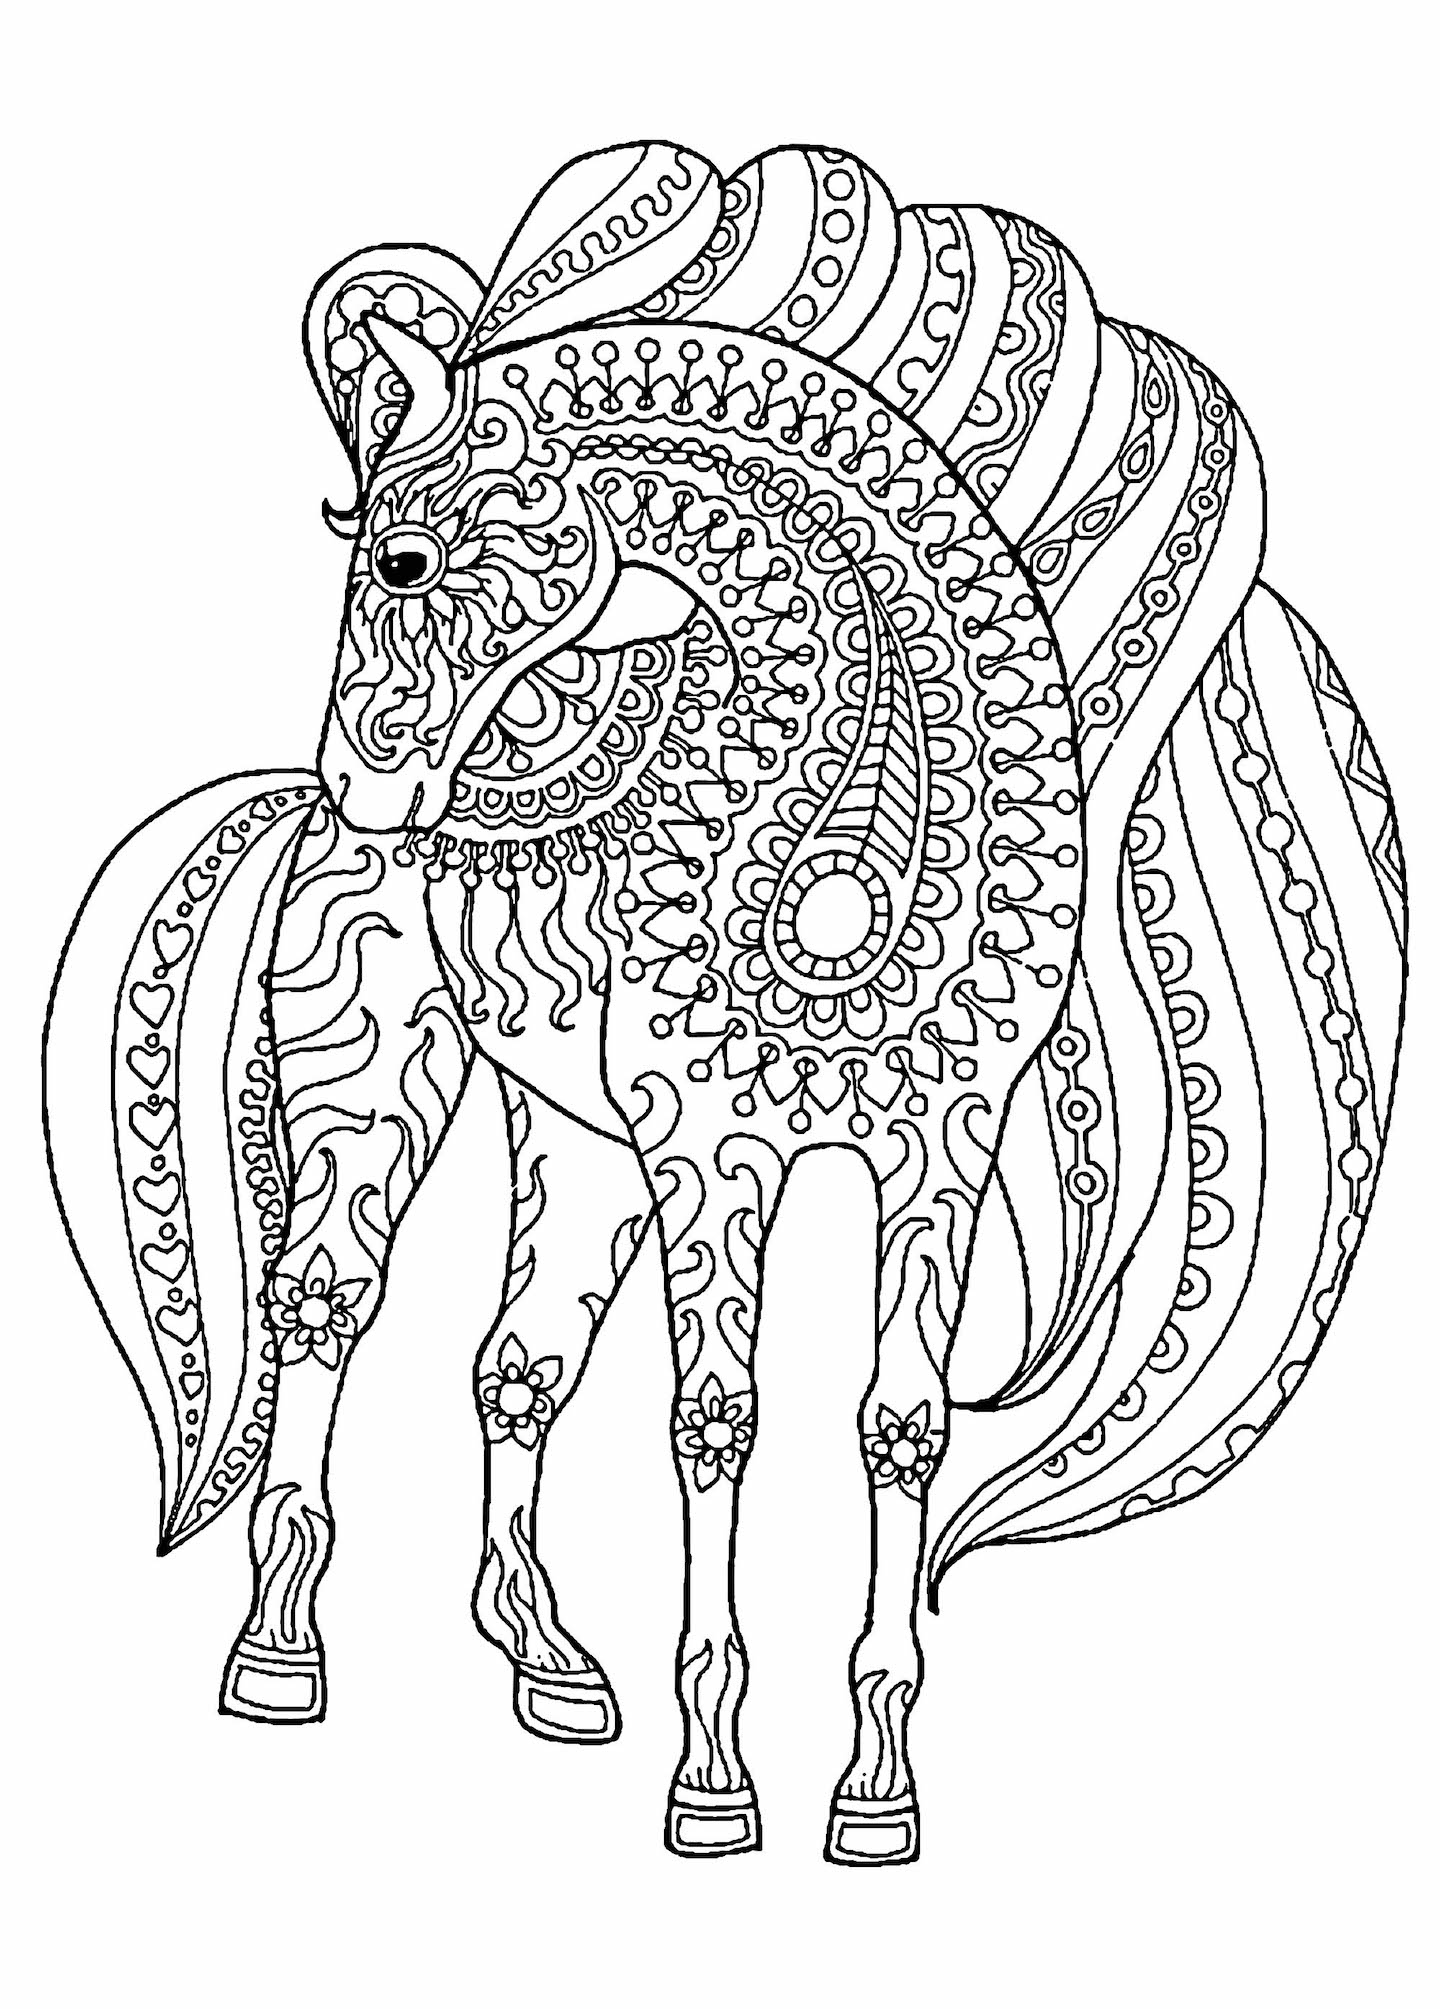 Fairy Coloring Pages for Adults Lovely Coloring Pages Adult ... | 2009x1440